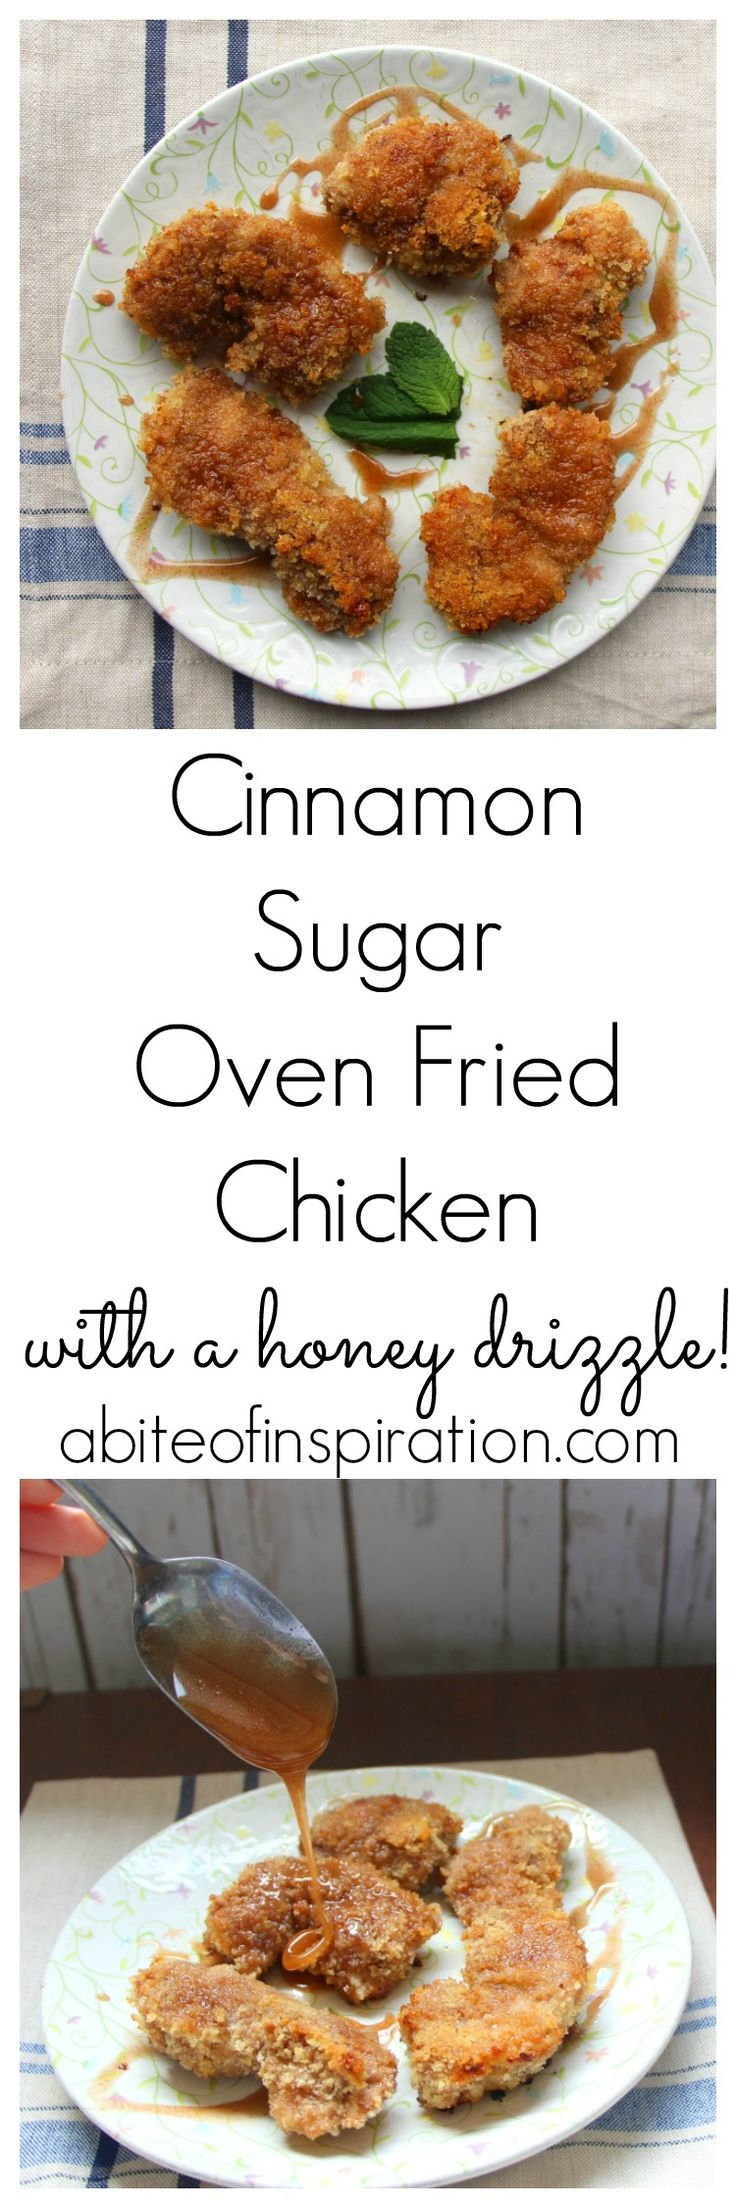 My Cinnamon Sugar Oven Fried Chicken is crunchy, slightly sweet, and incredibly tasty! Plus a drizzle of cinnamon honey on top-- perfection!